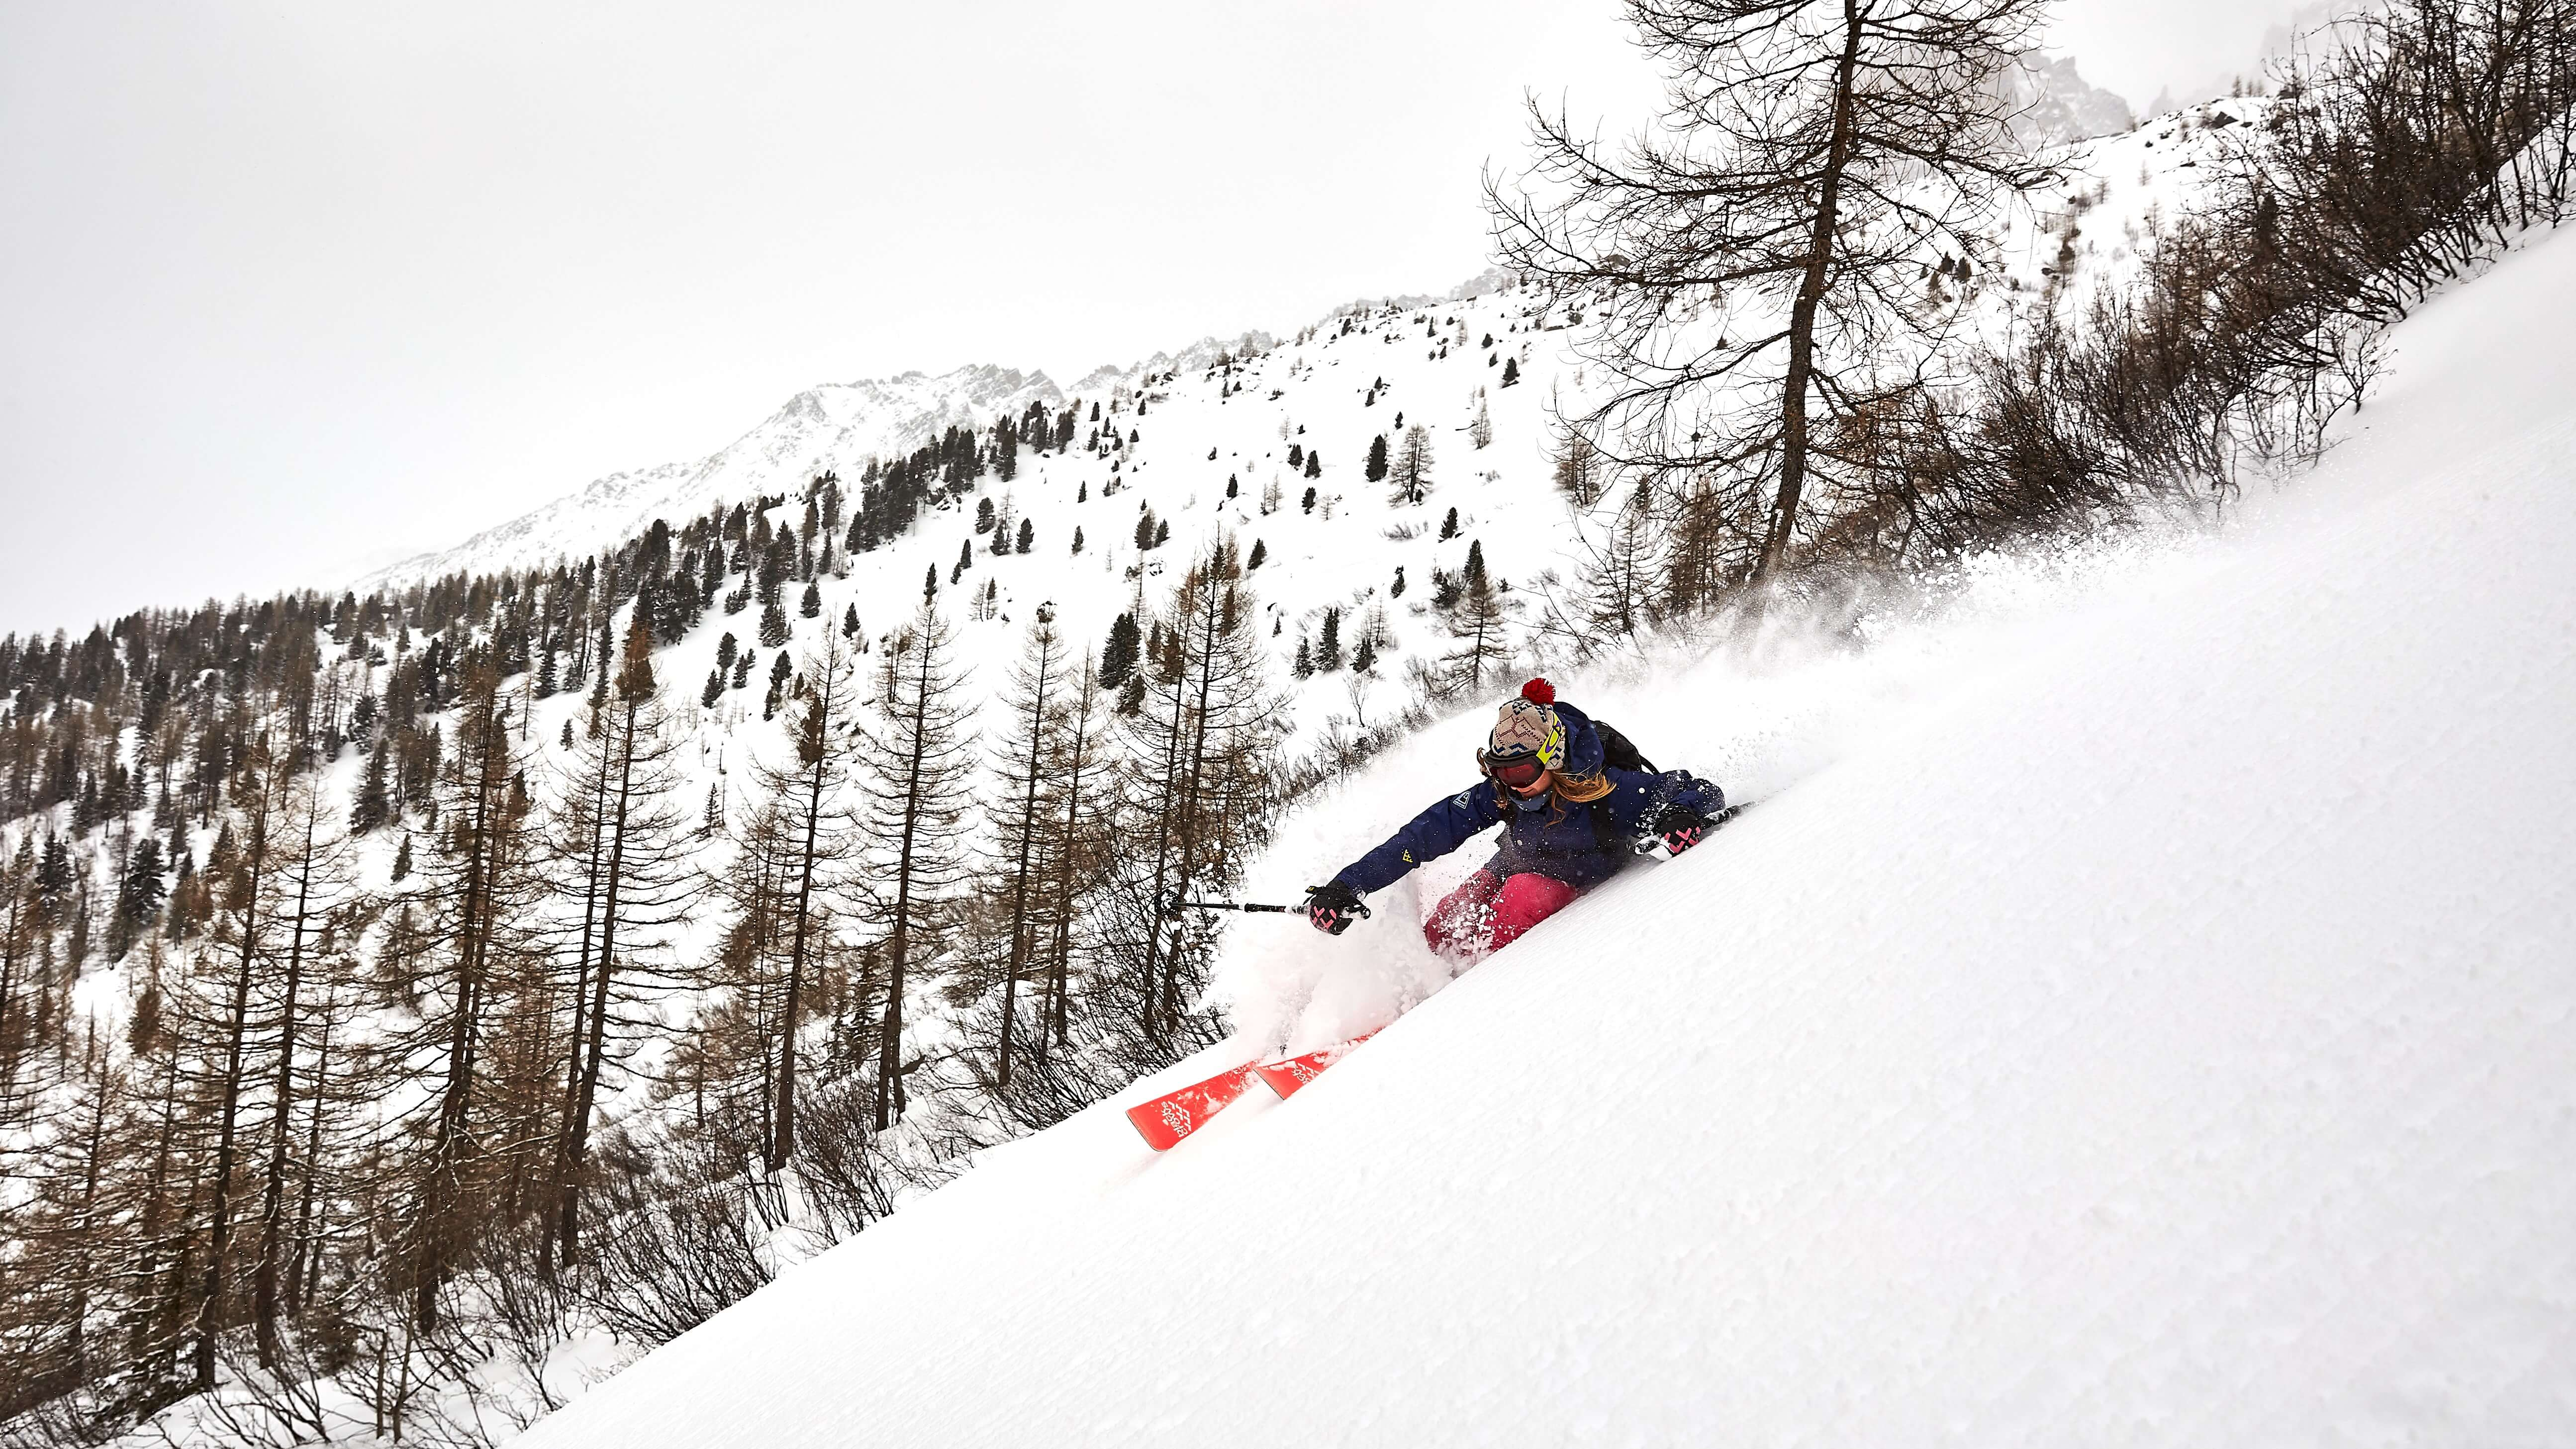 Try freeride - beginners - Azimut Ski Bike Mountain - www.azimut.ski